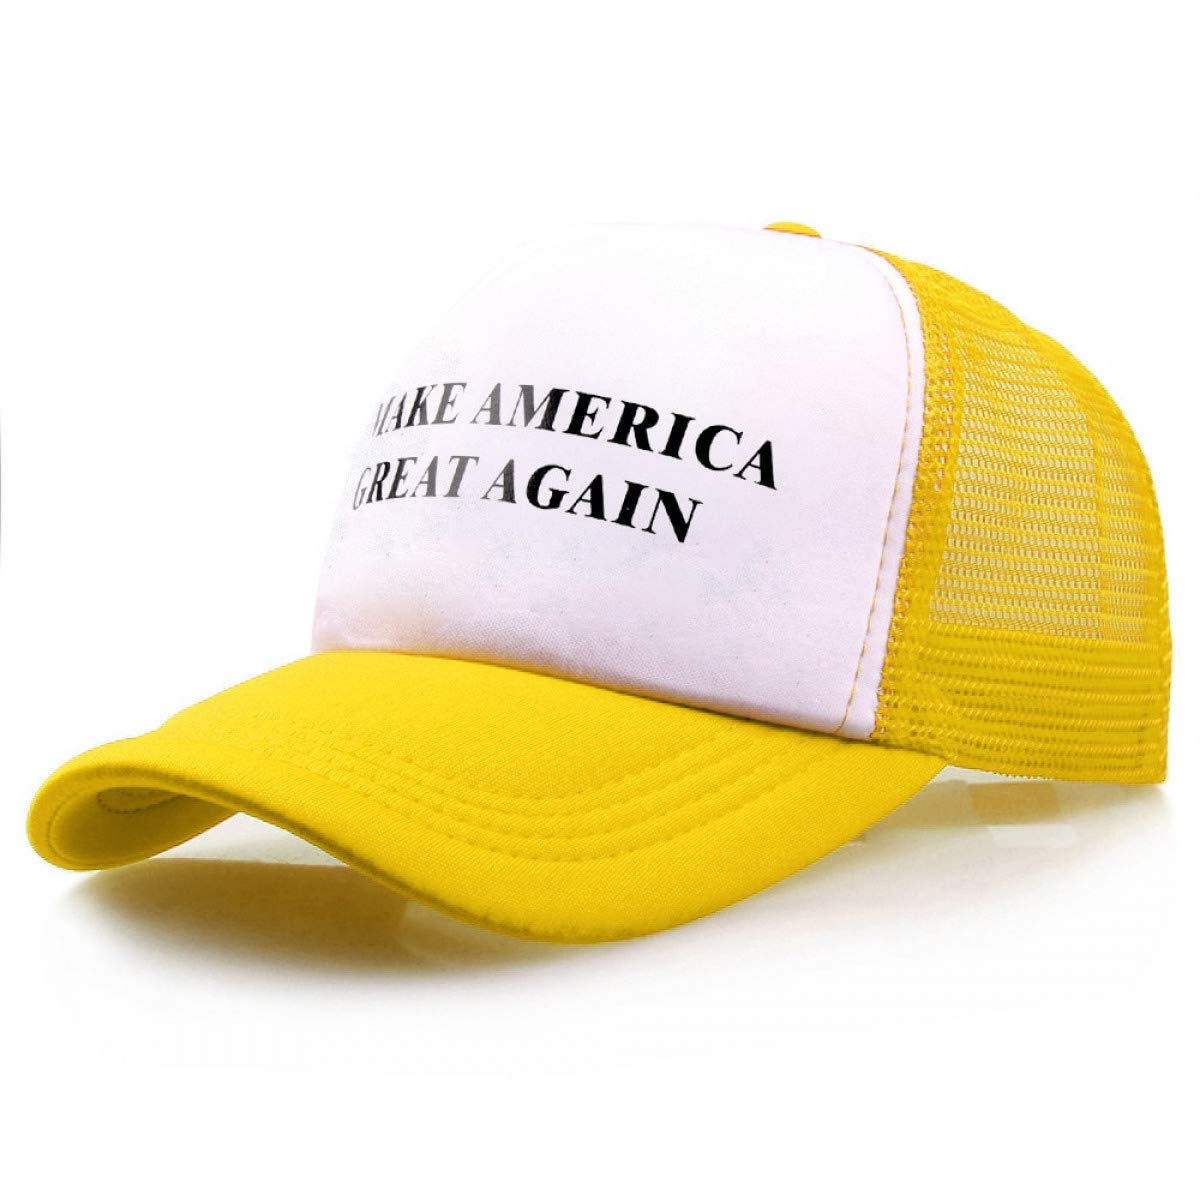 Trump 2020 Make America Great Again Caps Donald Trump Men Women Snapback Hats Yellow at Amazon Mens Clothing store: